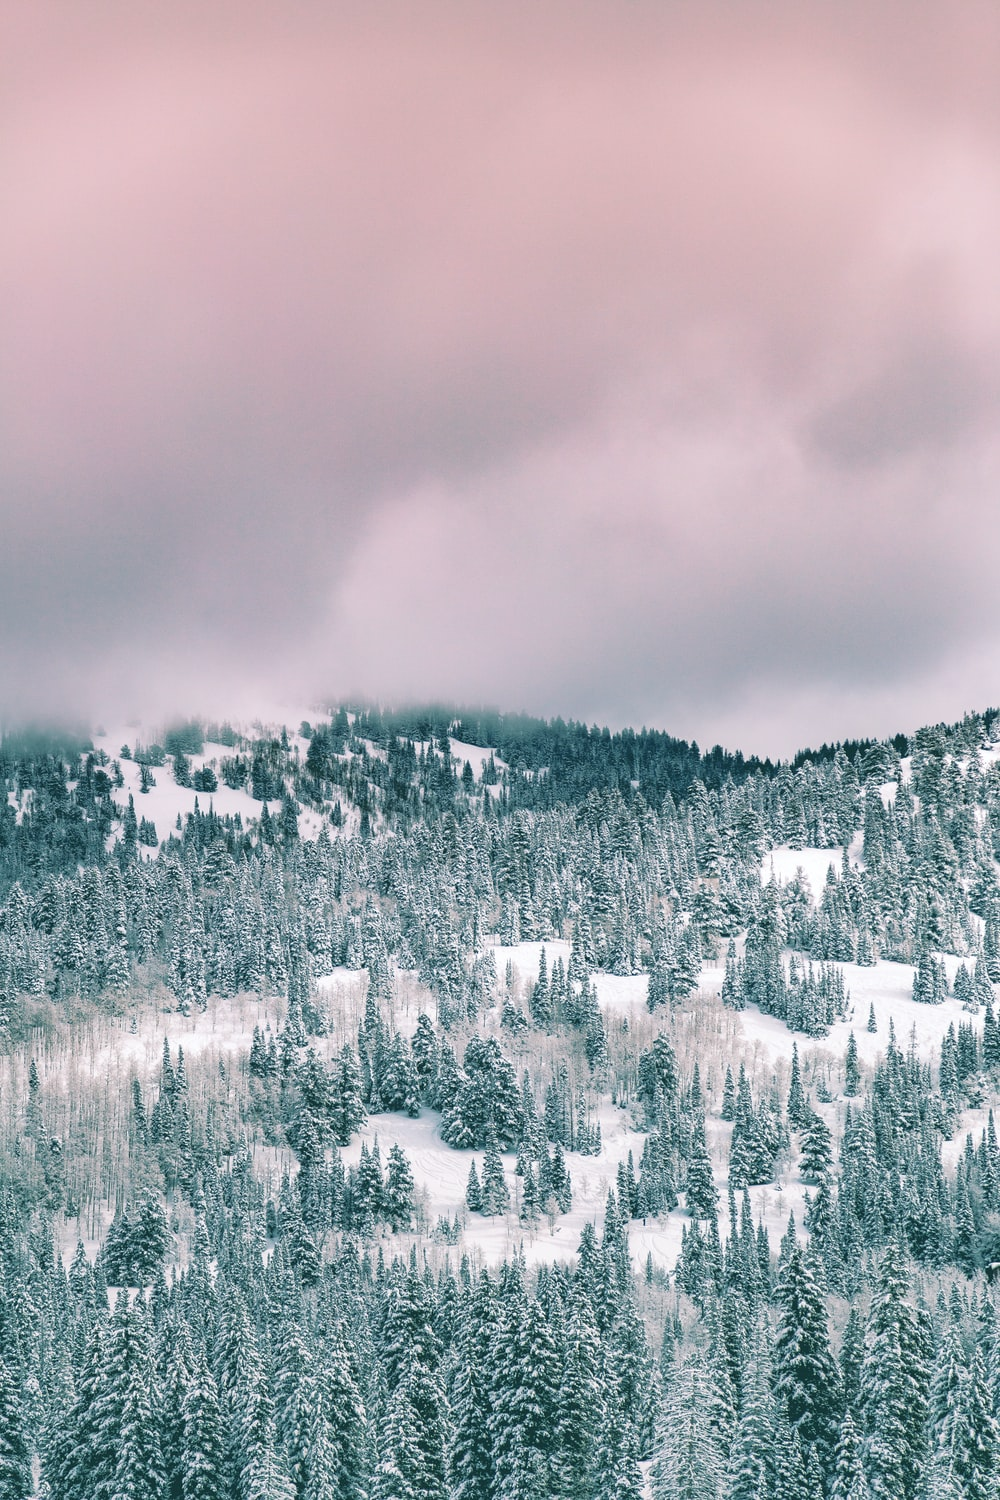 green trees covered by snow under cloudy sky during daytime